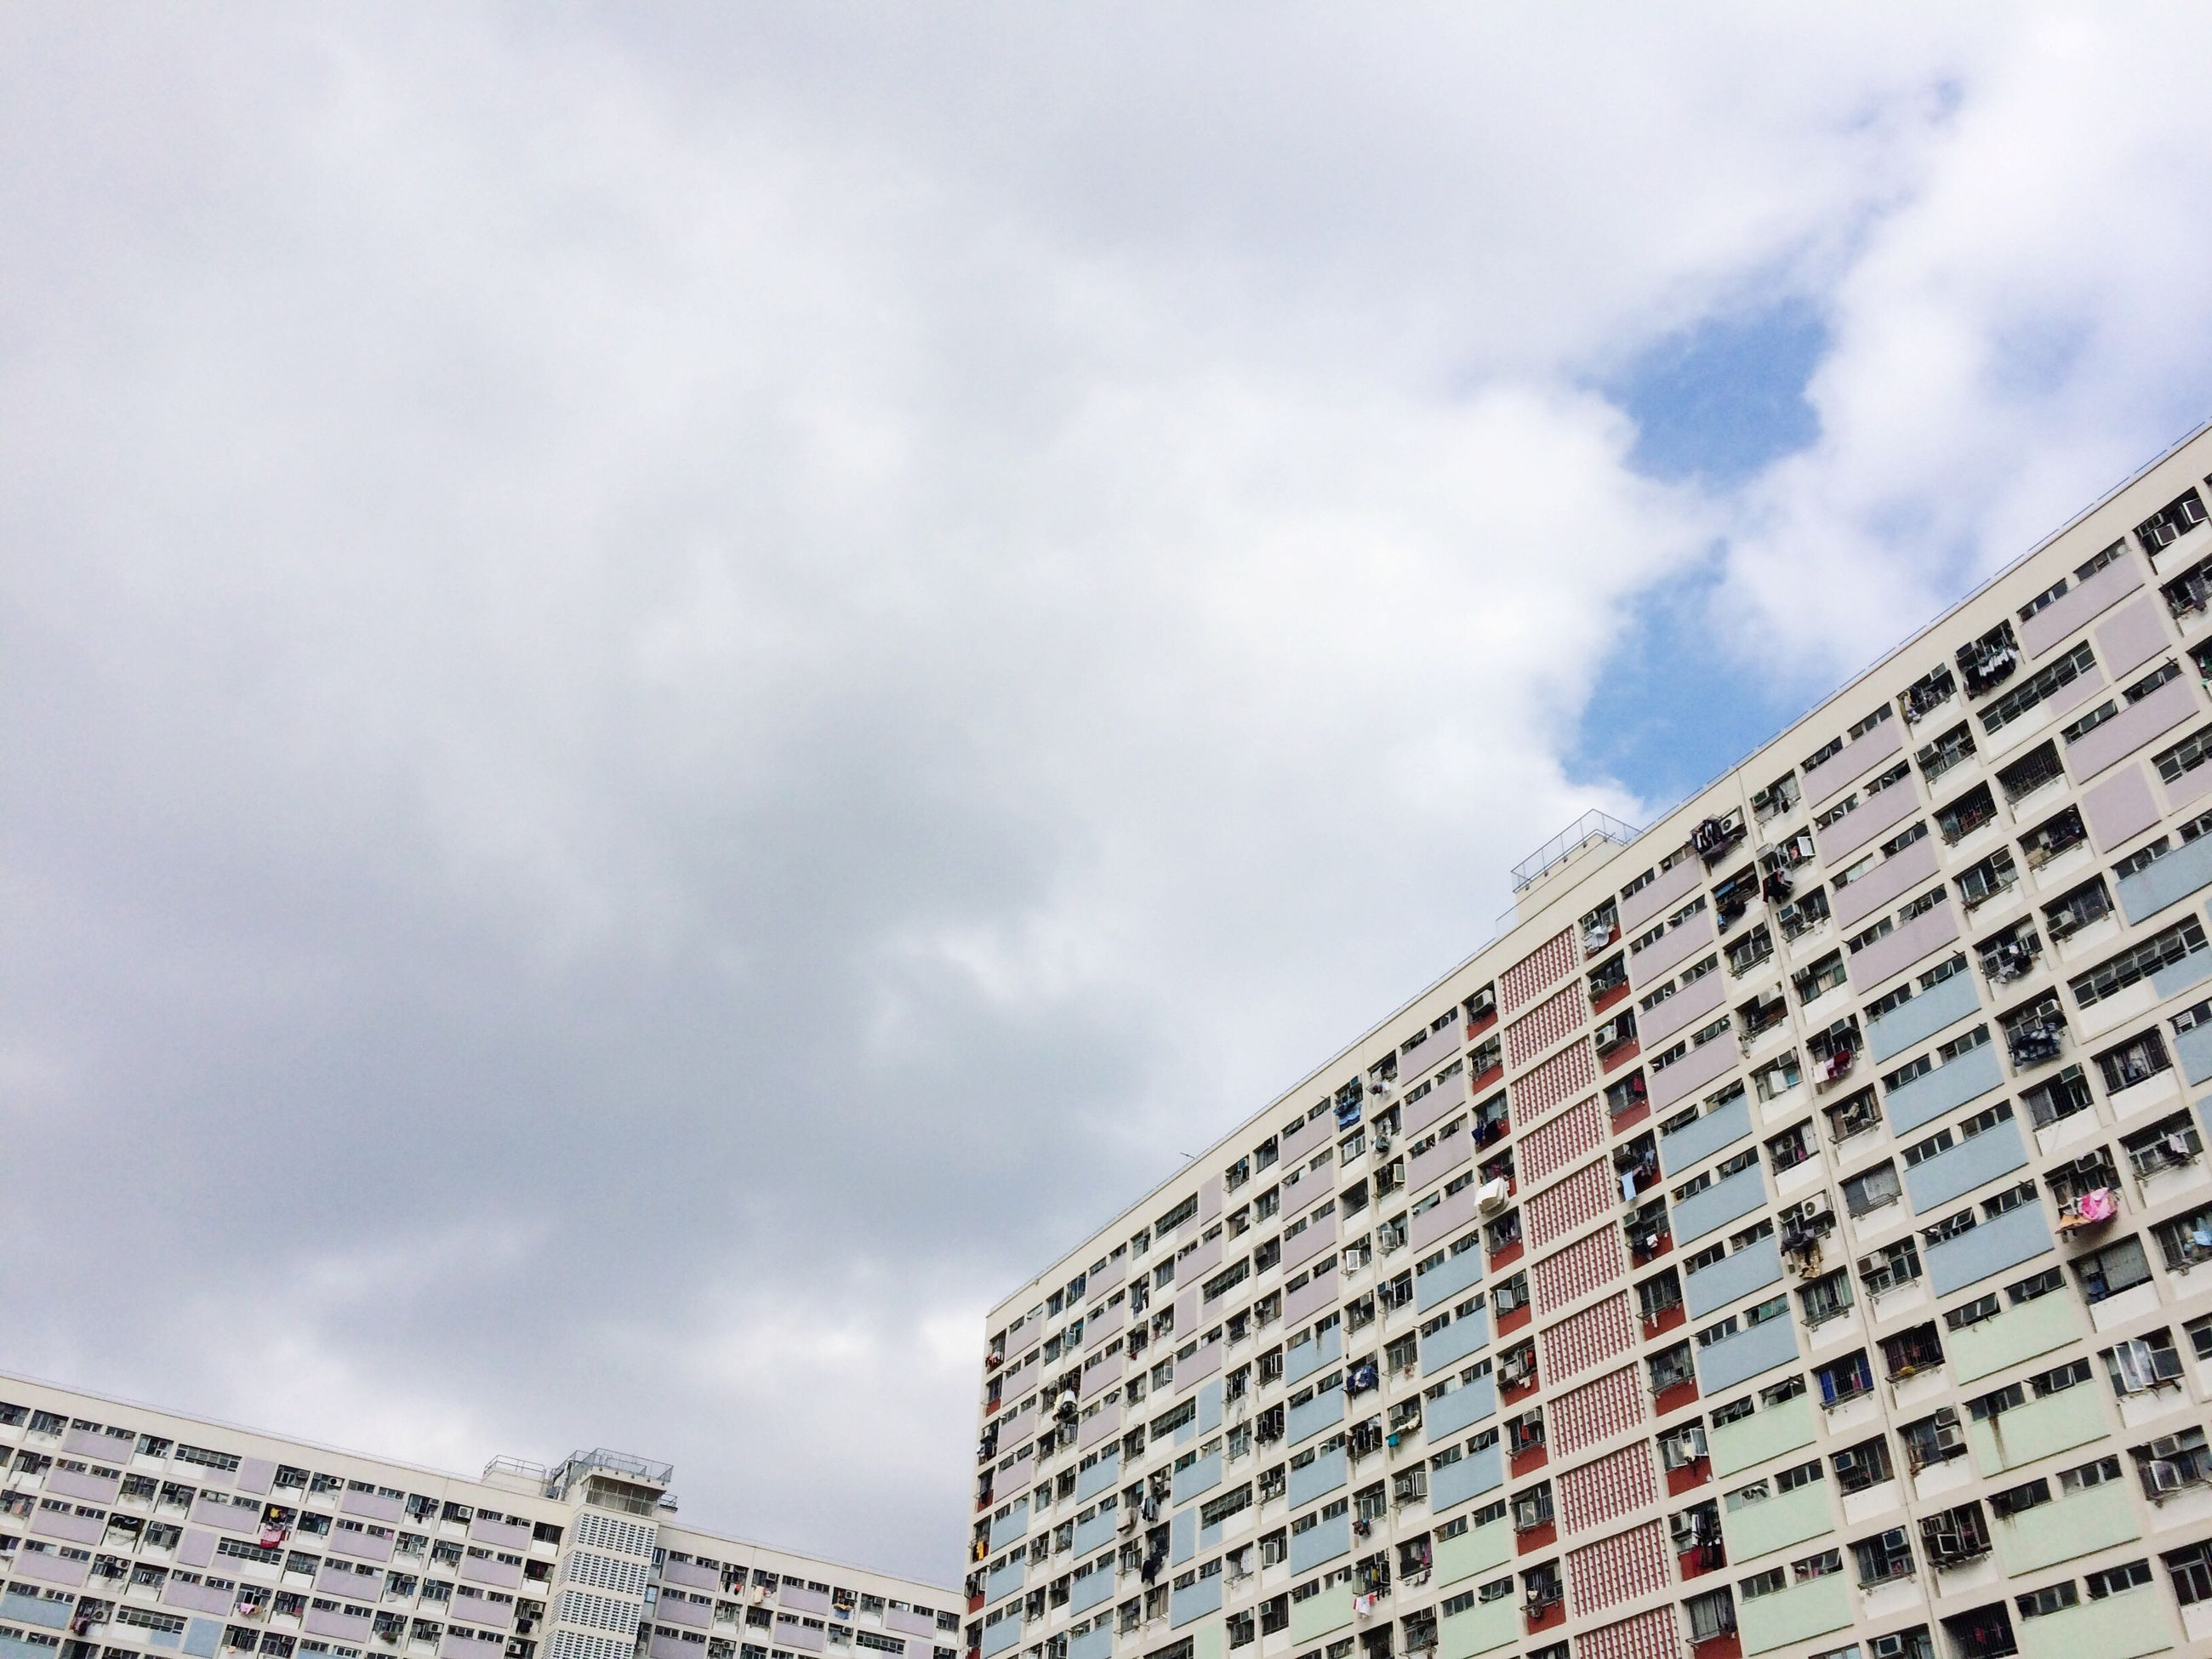 building exterior, architecture, built structure, sky, low angle view, city, cloud - sky, cloudy, building, cloud, modern, office building, residential building, residential structure, overcast, day, skyscraper, outdoors, tall - high, window